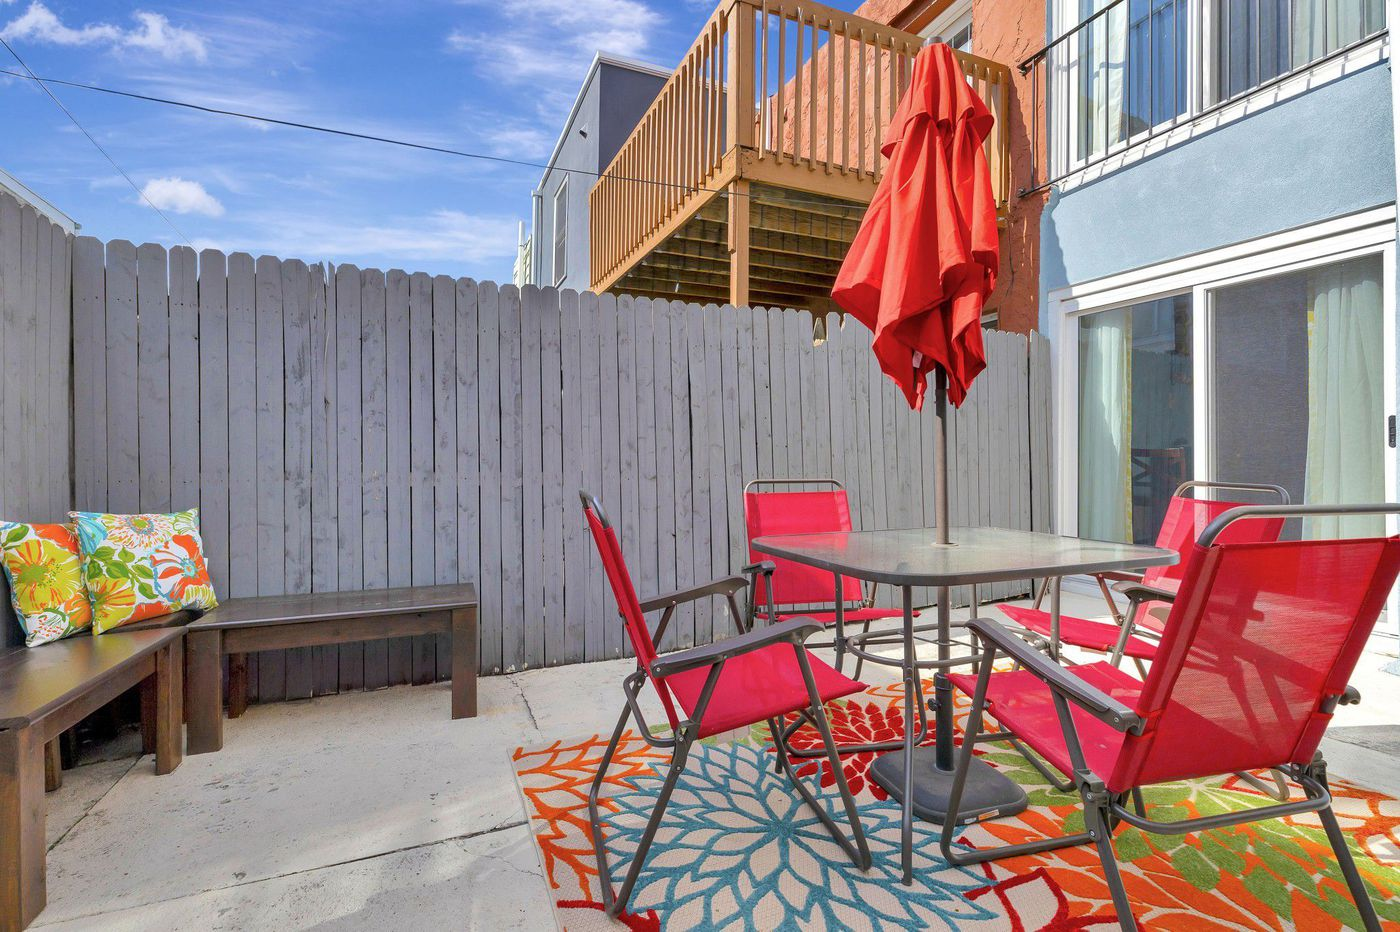 On the market: A two-bedroom rowhouse near Center City for $319,000